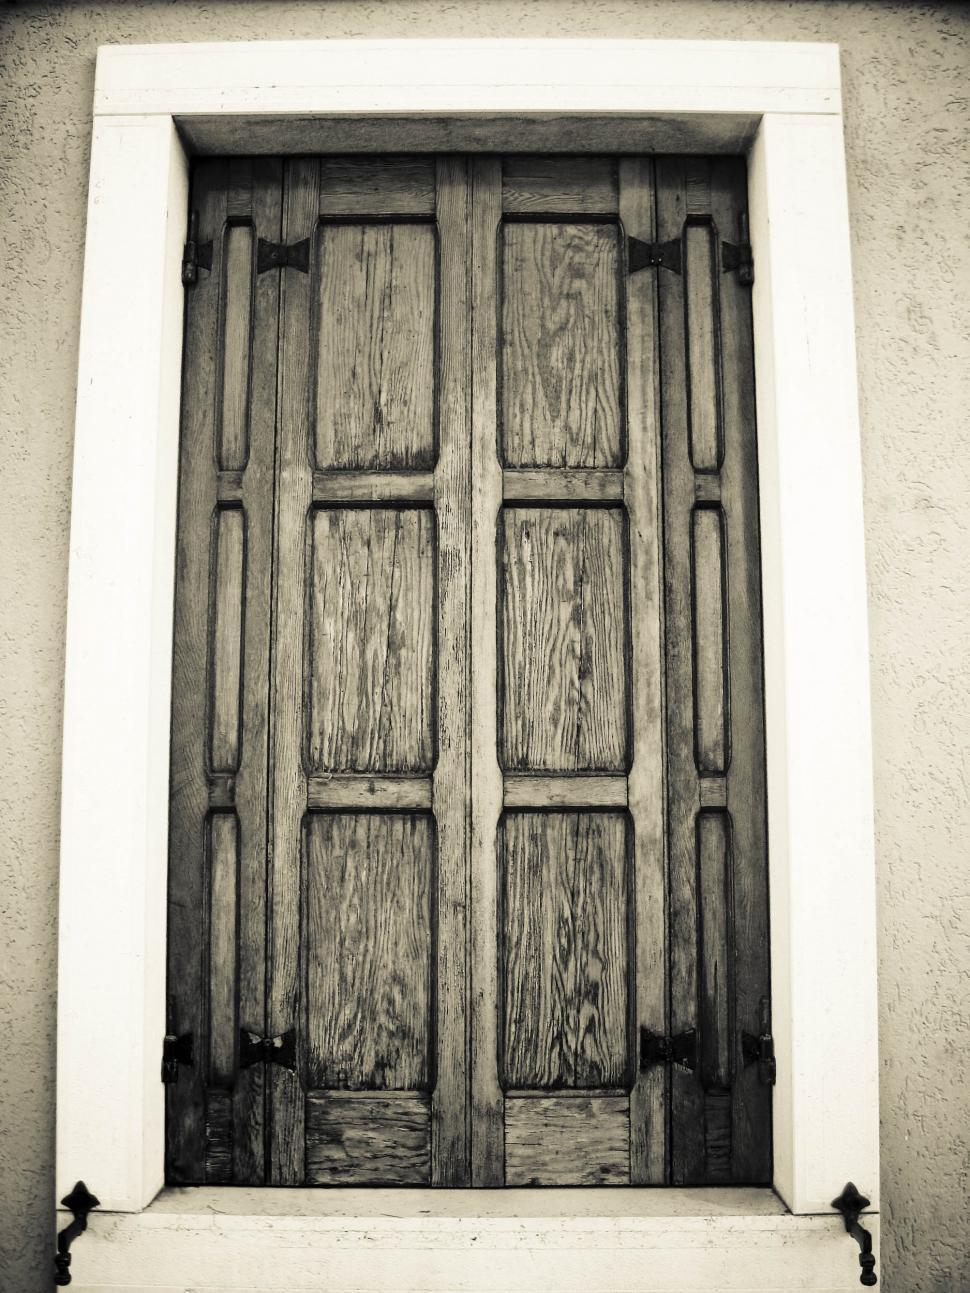 Download Free Stock HD Photo of wooden window shutters Online